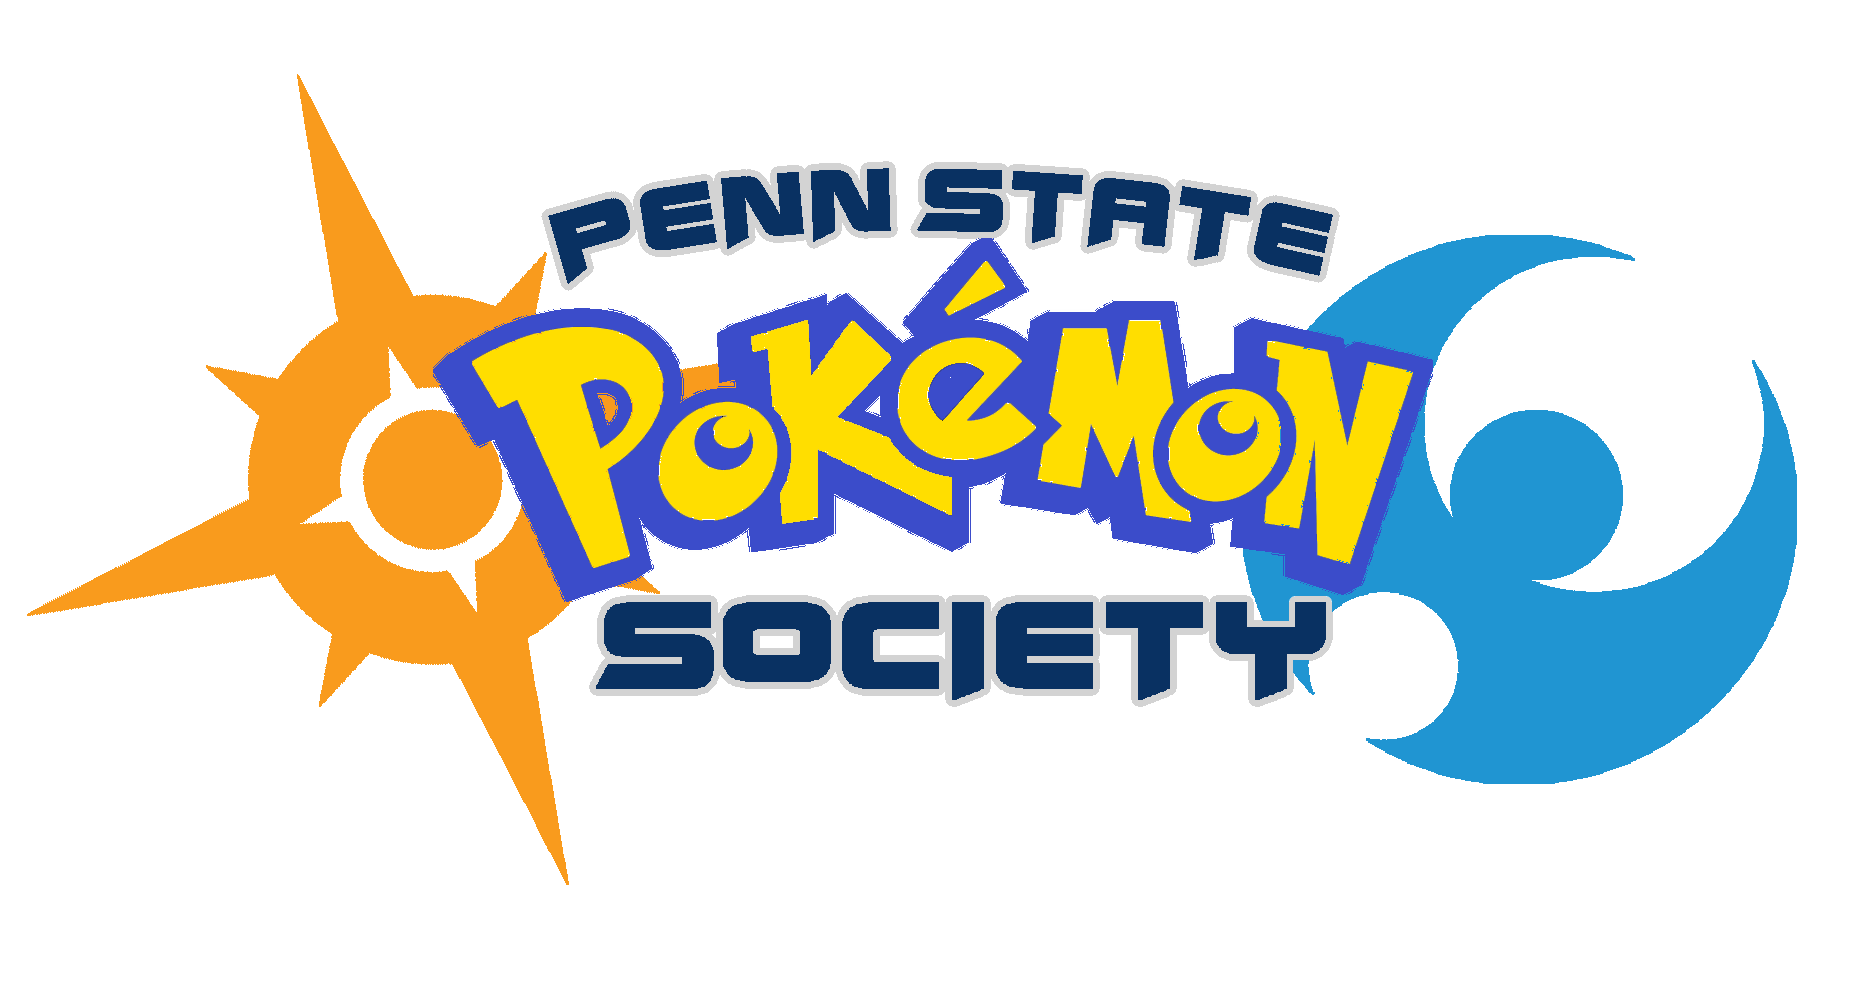 Penn State Pokemon Society